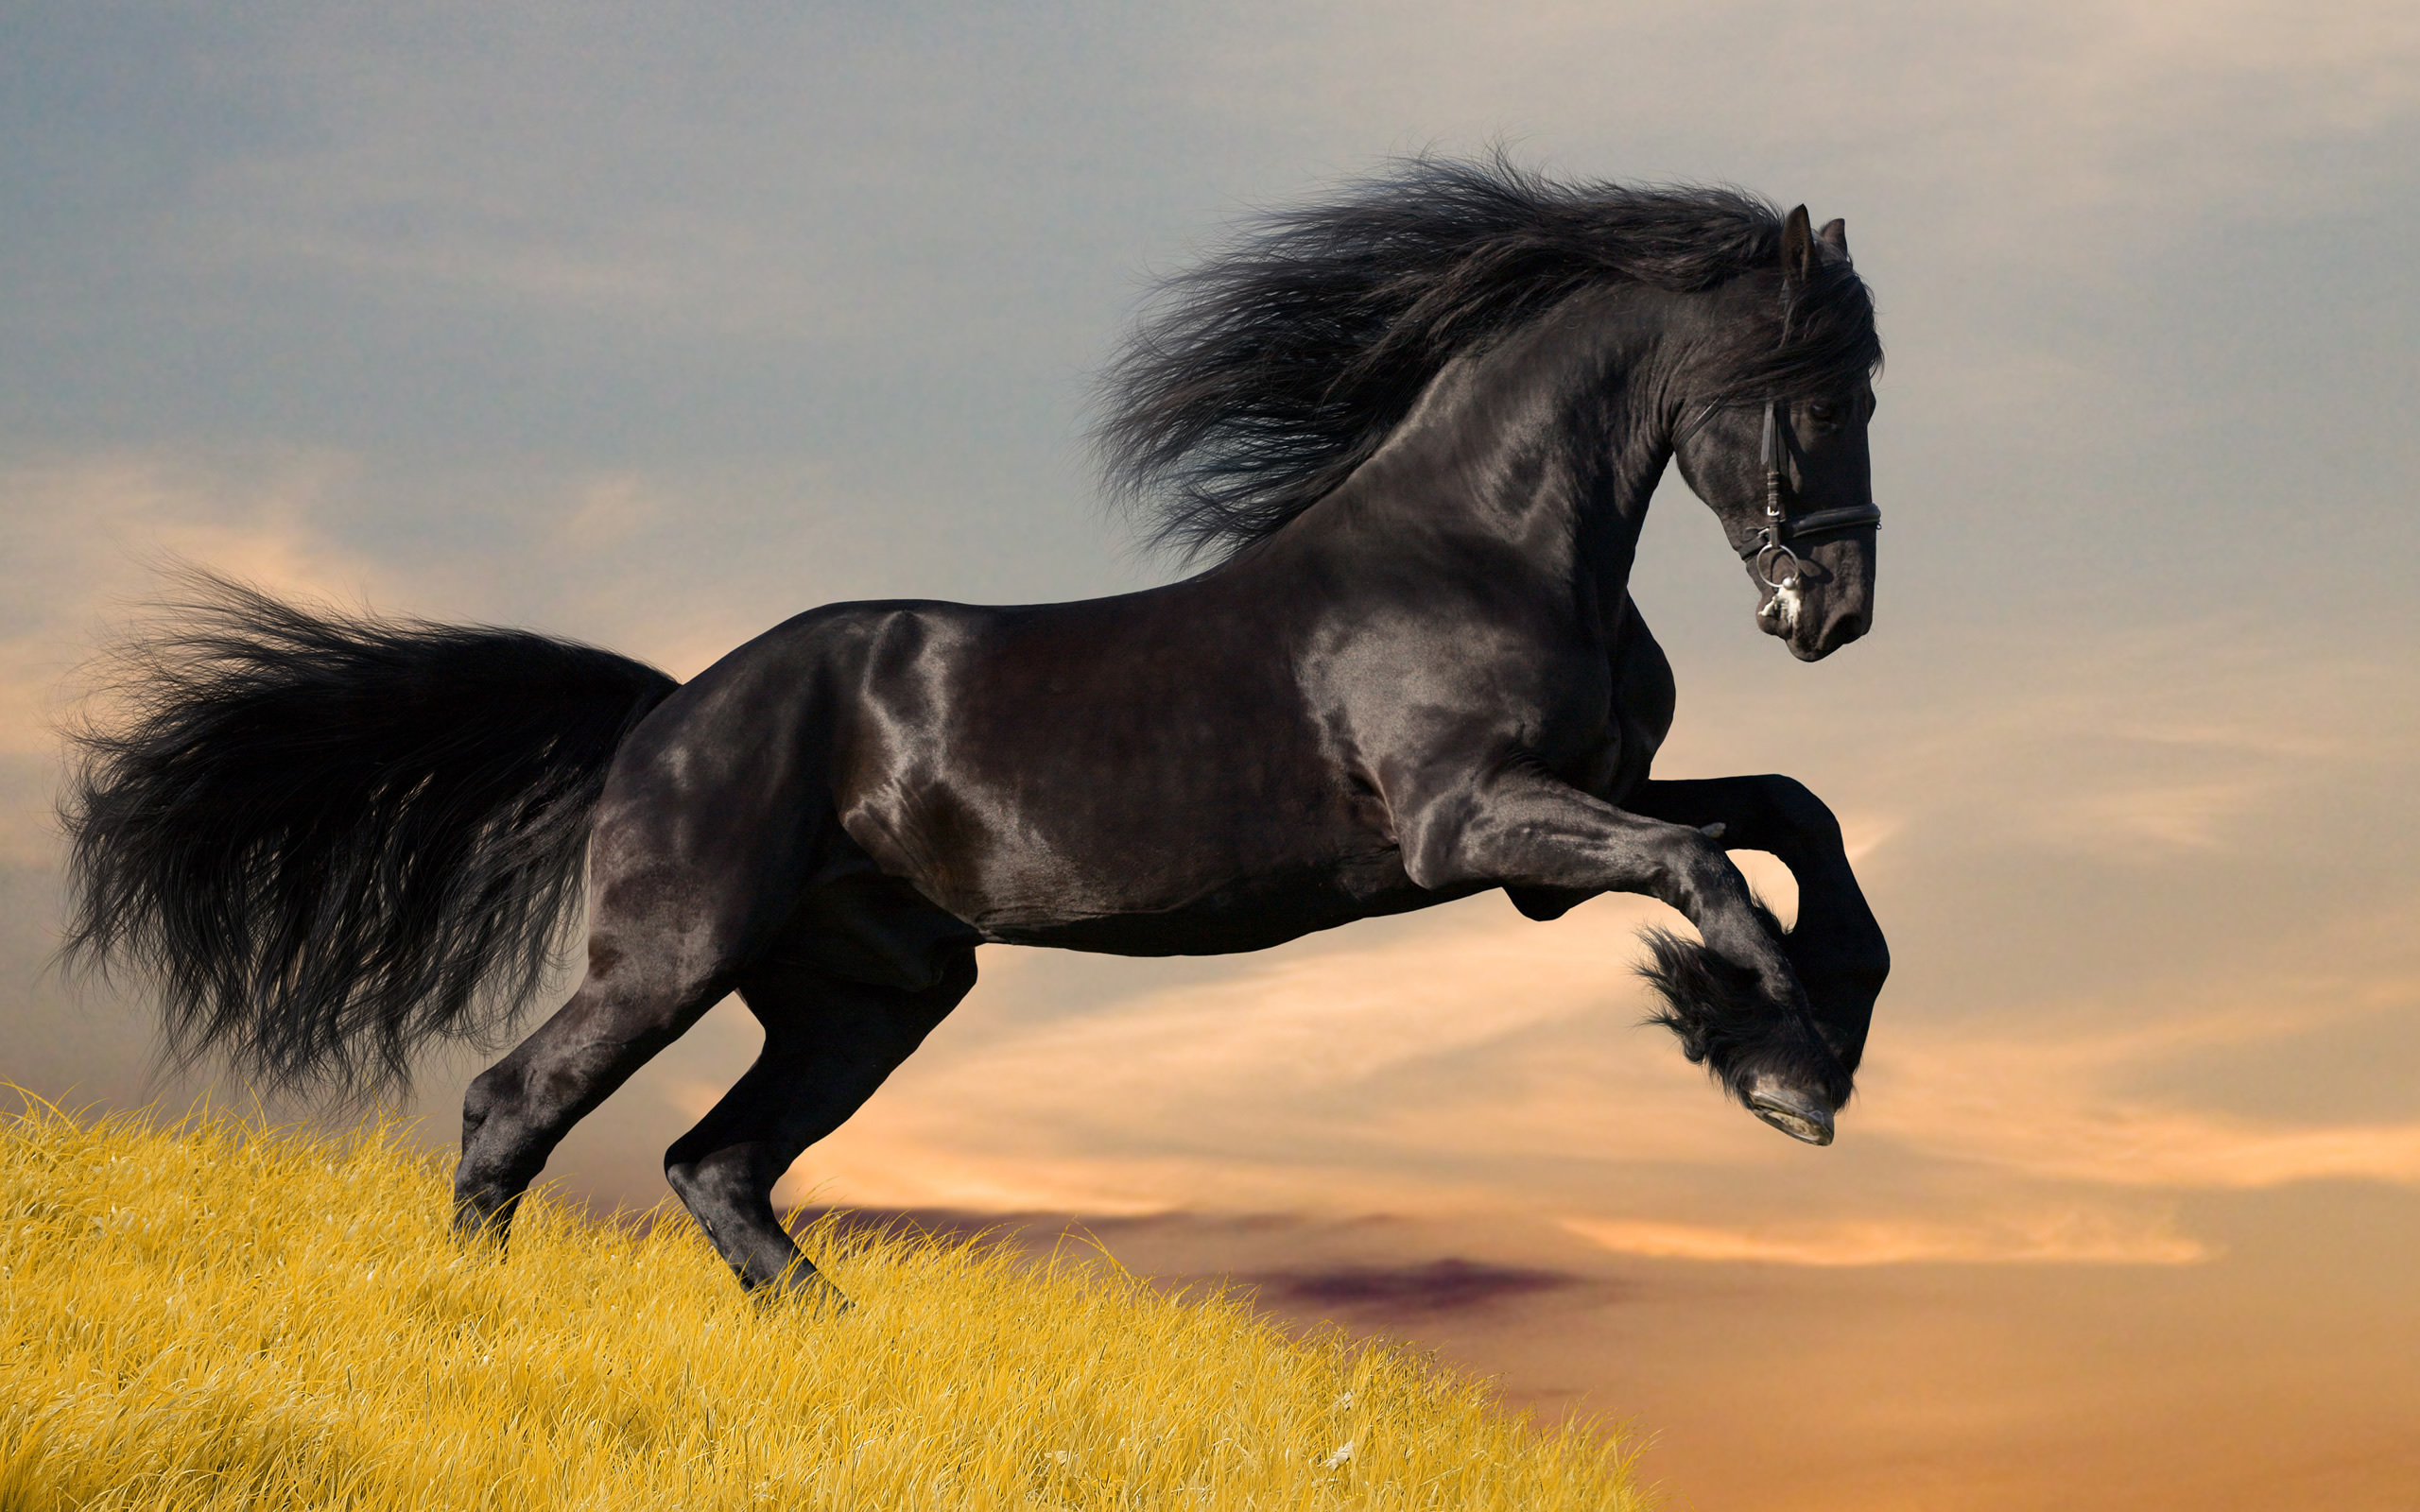 Black mustang horse wallpapers and images   wallpapers pictures 2560x1600